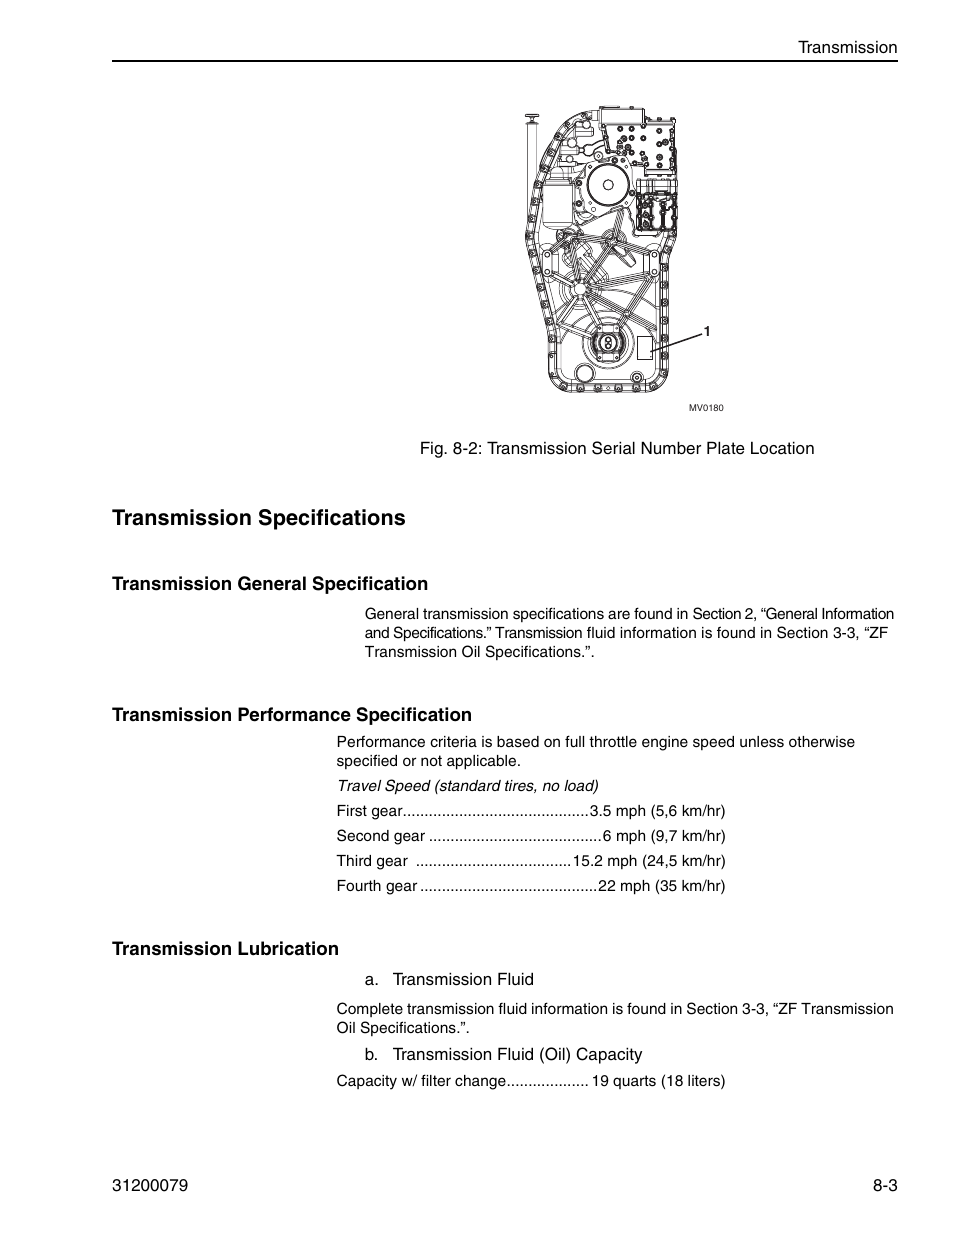 Transmission specifications | Lull 1044C-54 Series II